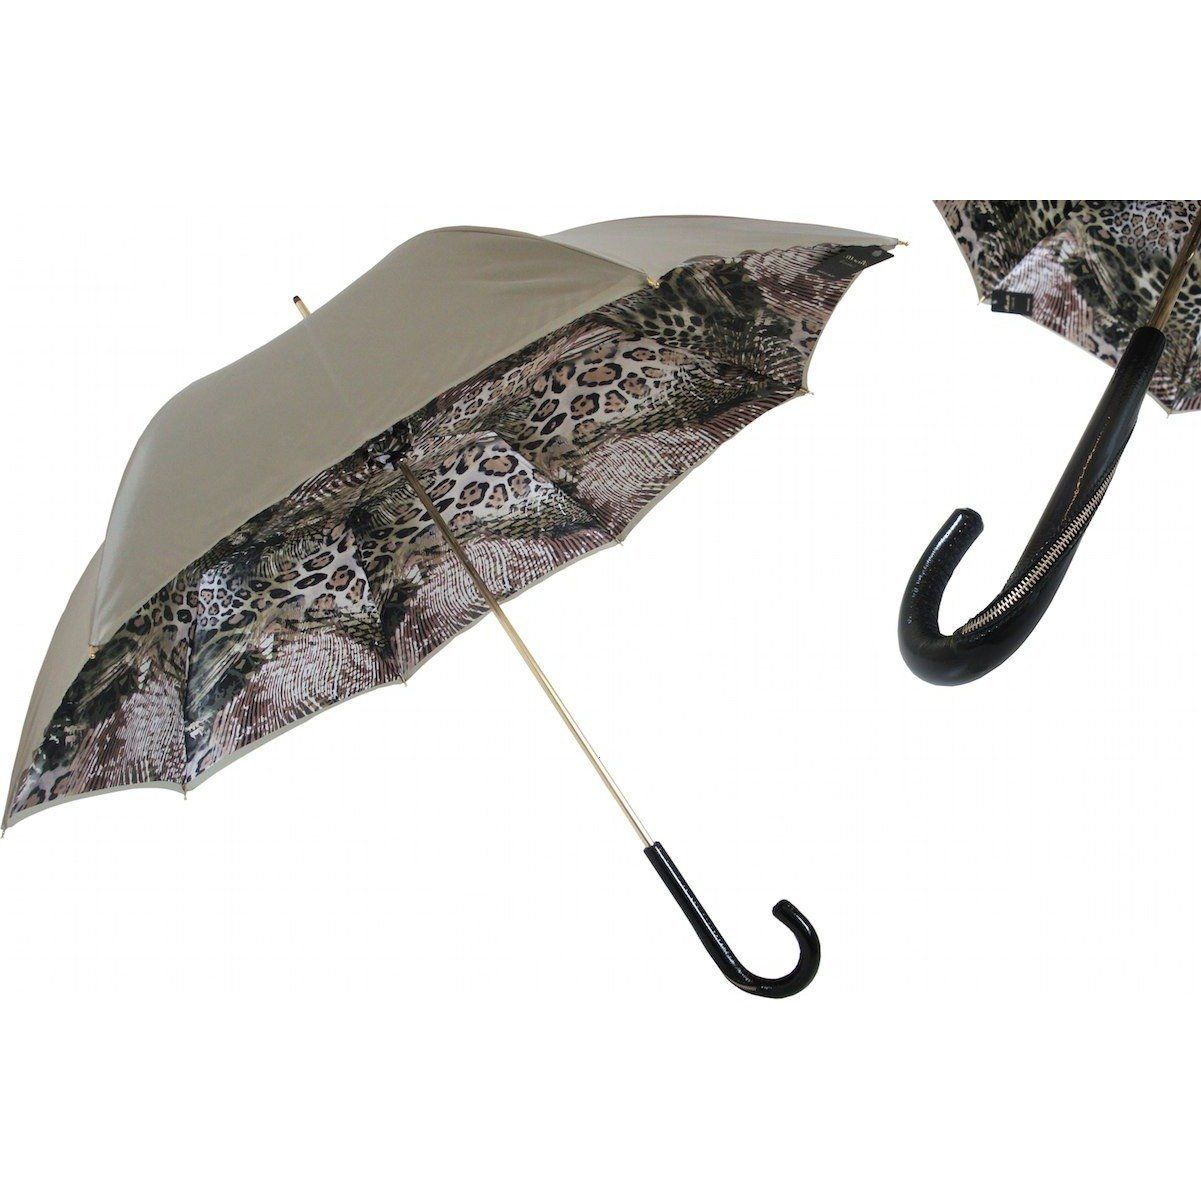 Zip handle jungle umbrella double cloth